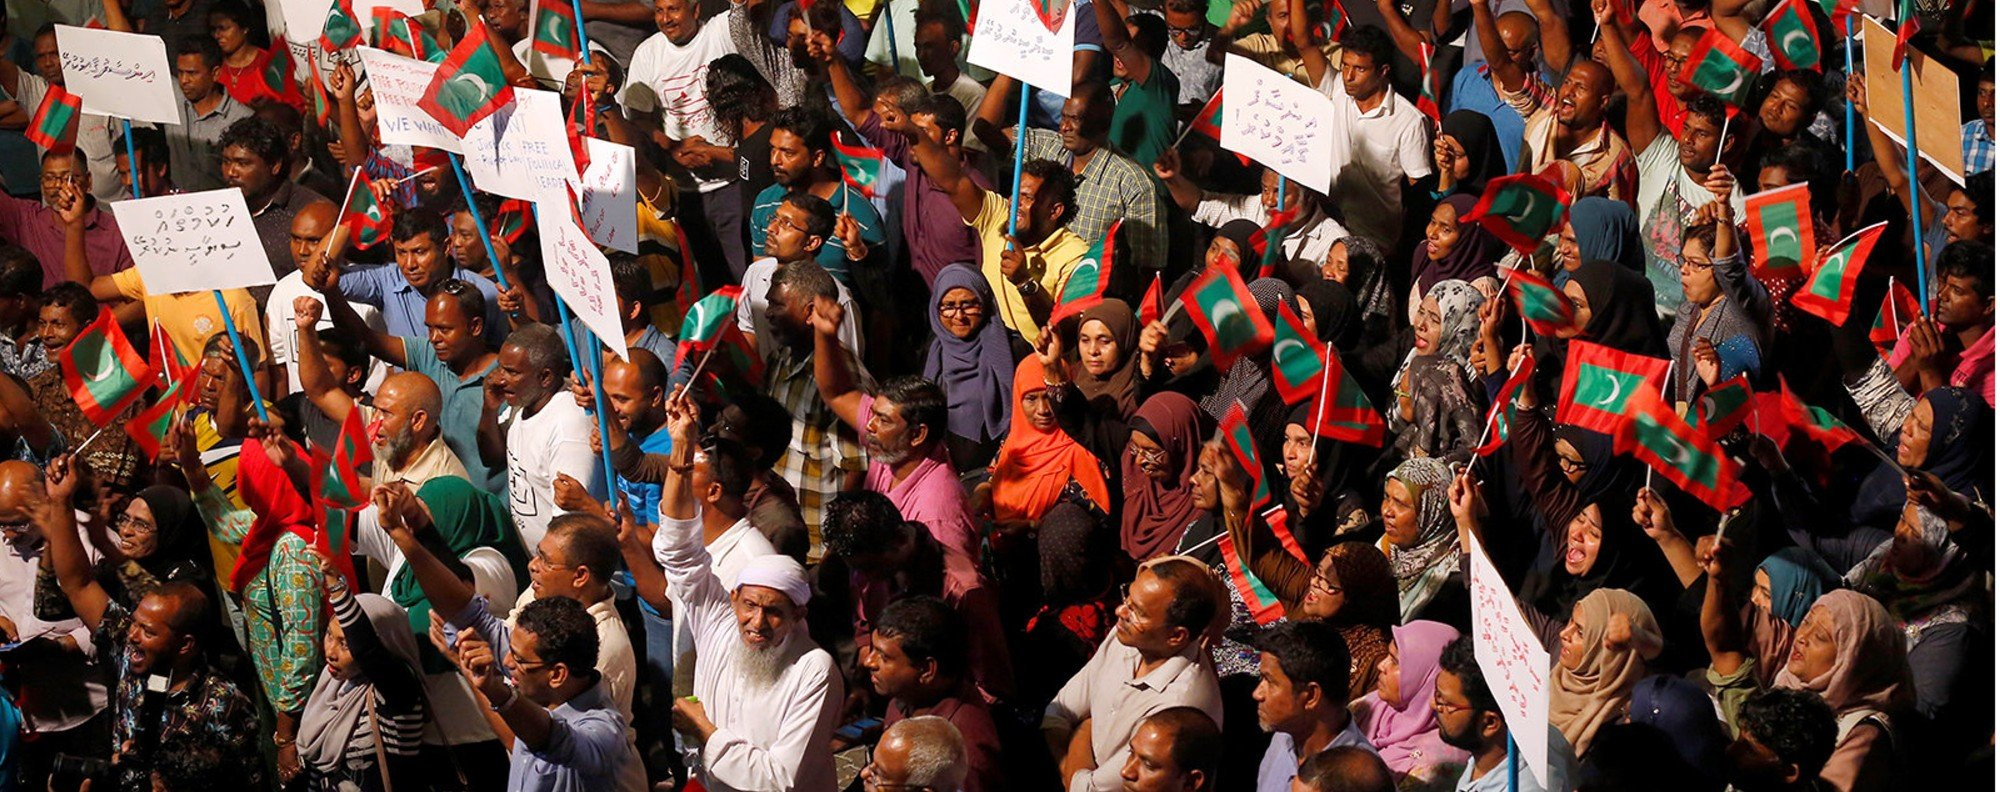 An opposition protest against the Maldives government. Photo: Reuters